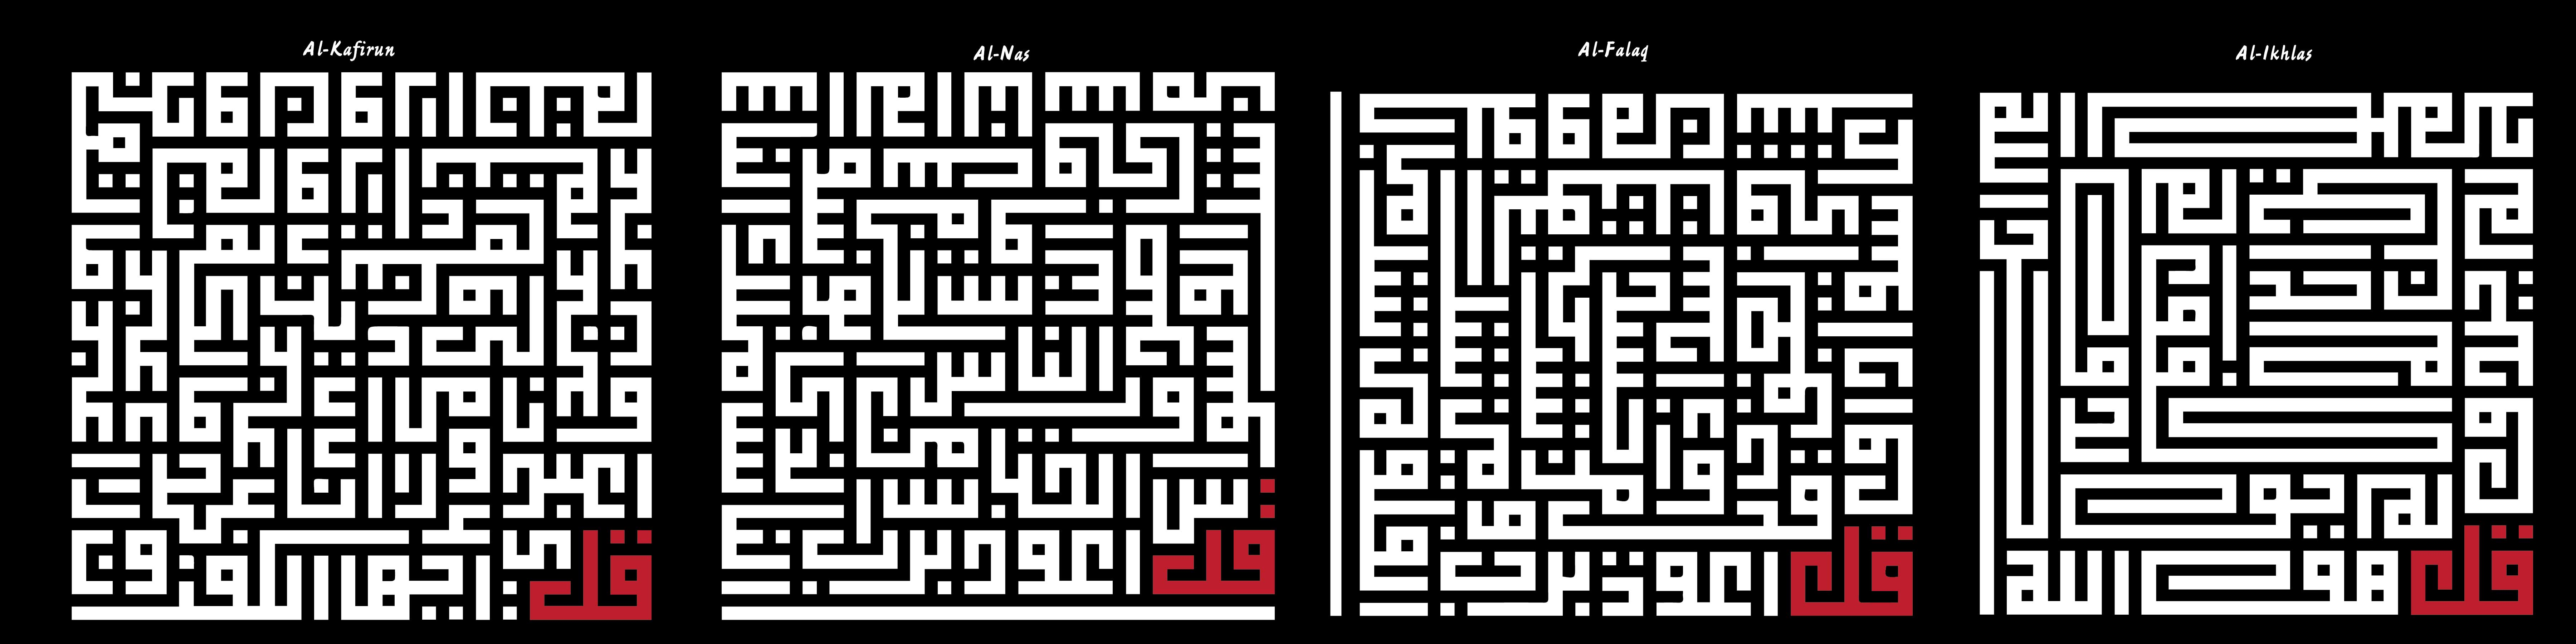 Free Islamic Calligraphy 4 Chapters In Kufic